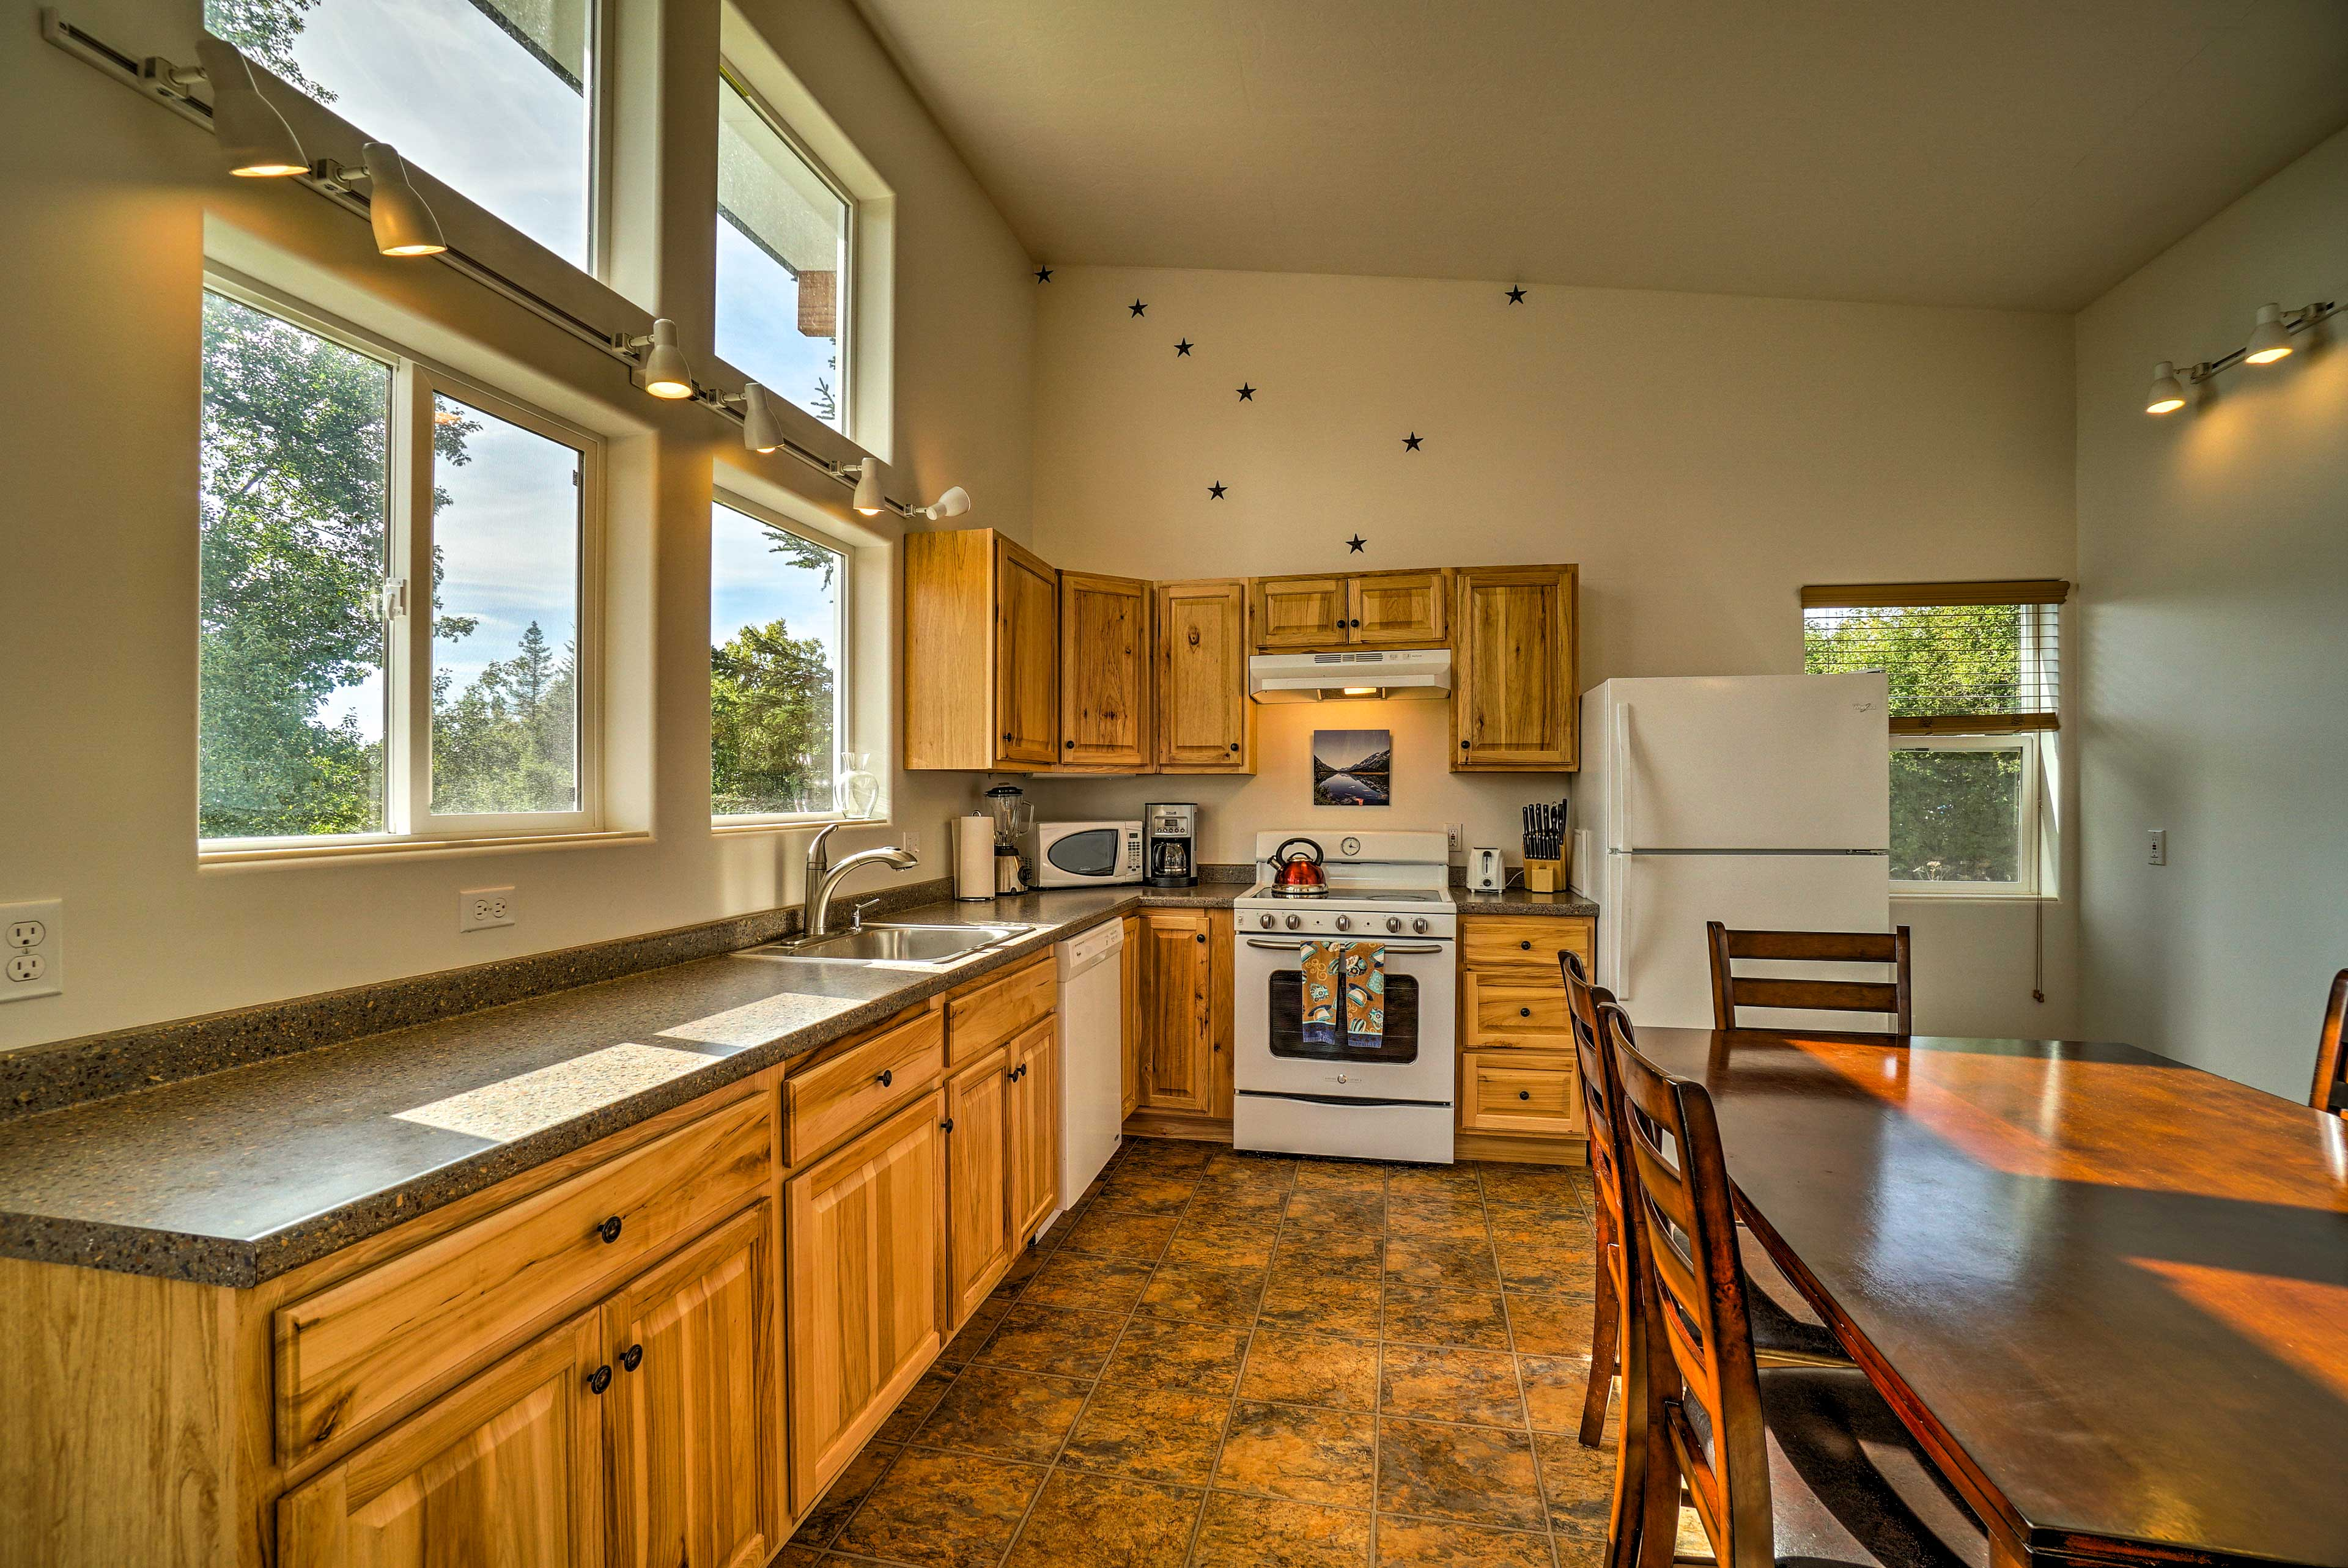 Enjoy stunning views while cleaning up the kitchen.